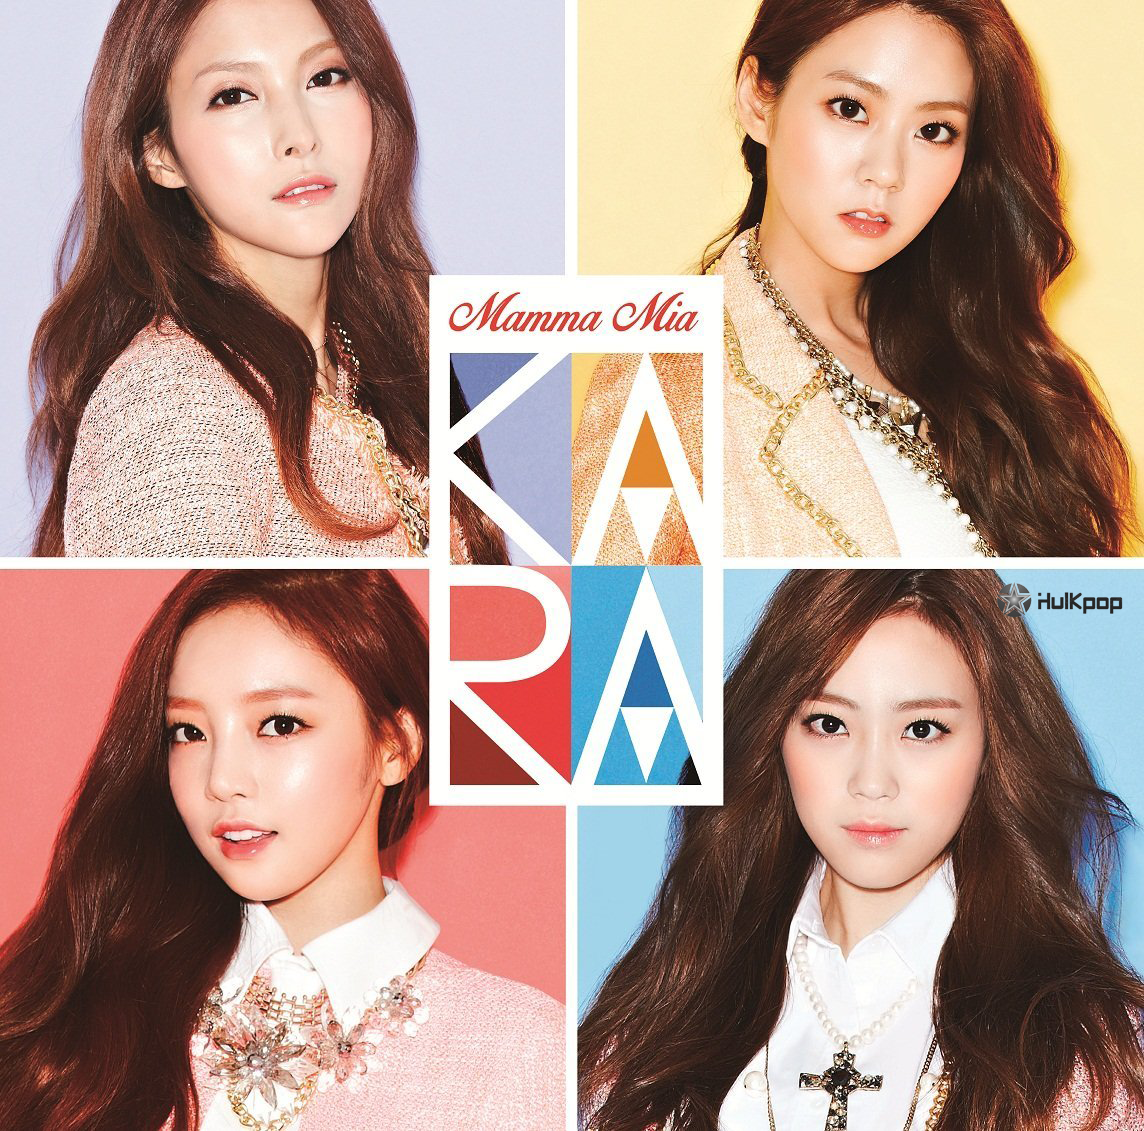 [Single] KARA – Mamma Mia! (Japanese) [Type C – FLAC]